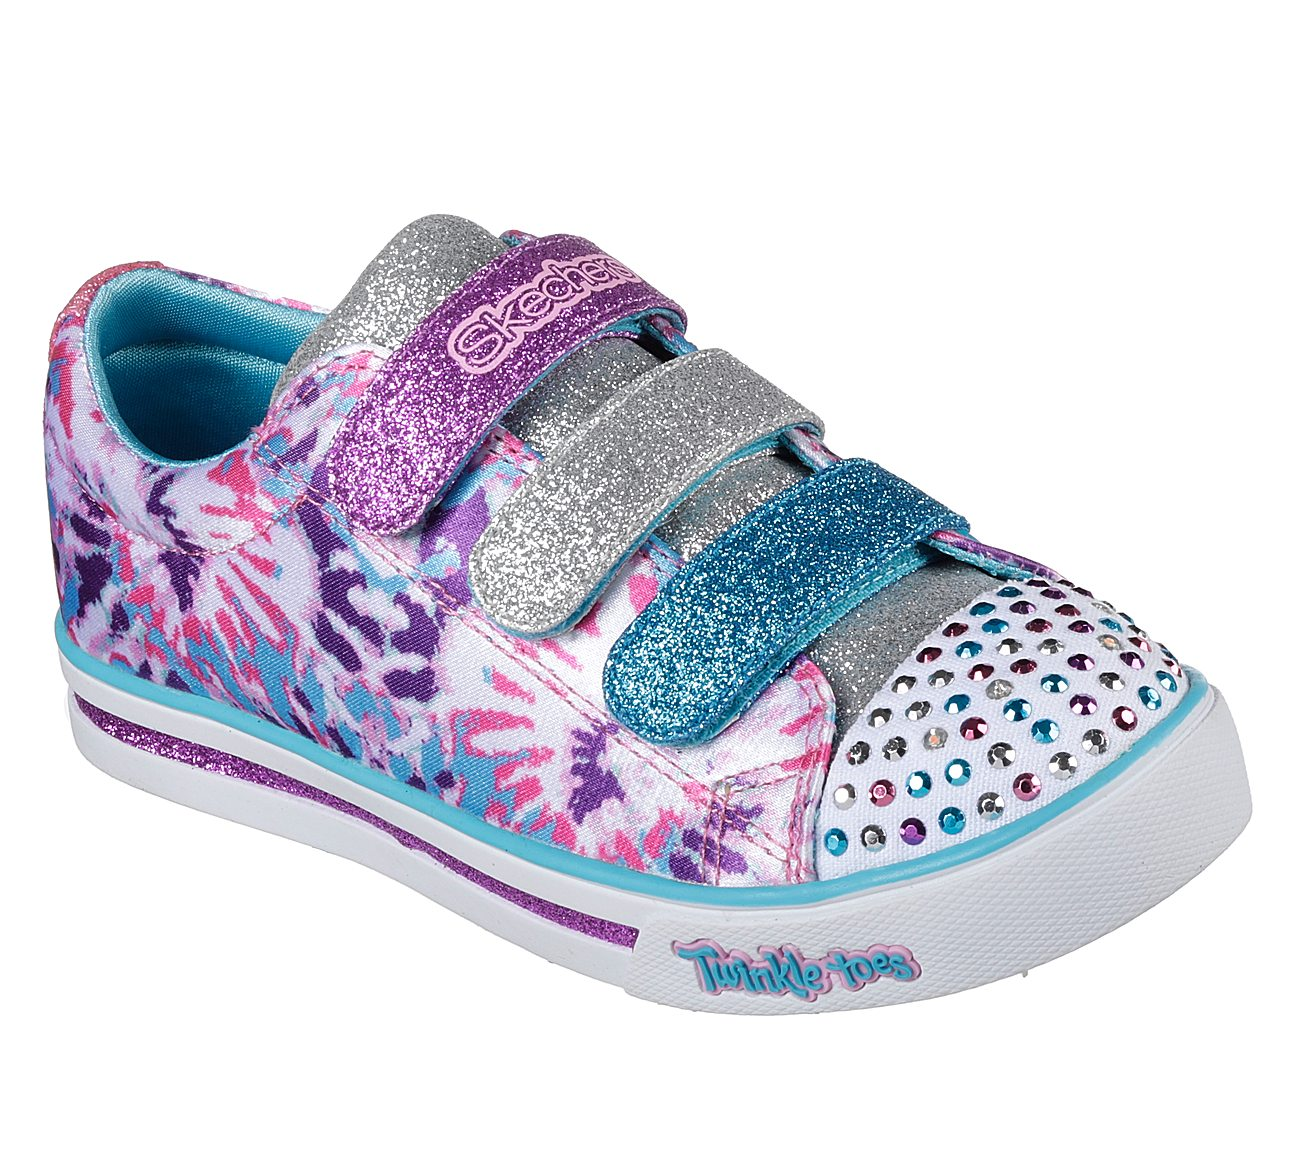 Skechers Twinkle Toes: Sparkle Glitz-Pop Party (Girls' Toddler-Youth) 7qkIlB4KcZ